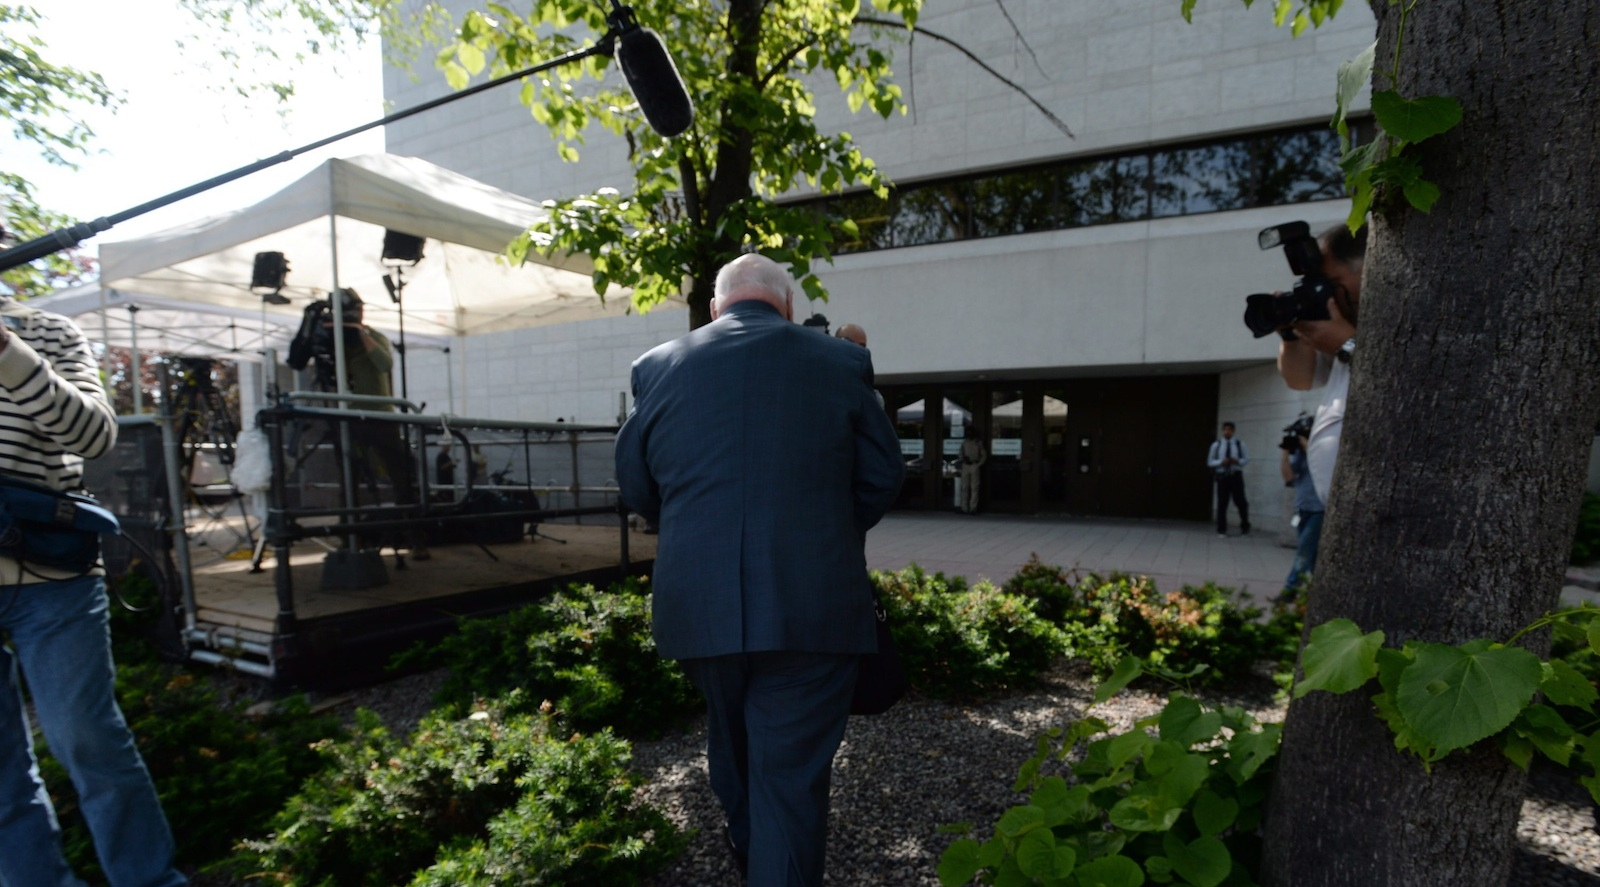 Suspened Senator Mike Duffy arrives at court in Ottawa on Thursday, June 4, 2015. THE CANADIAN PRESS/Sean Kilpatrick